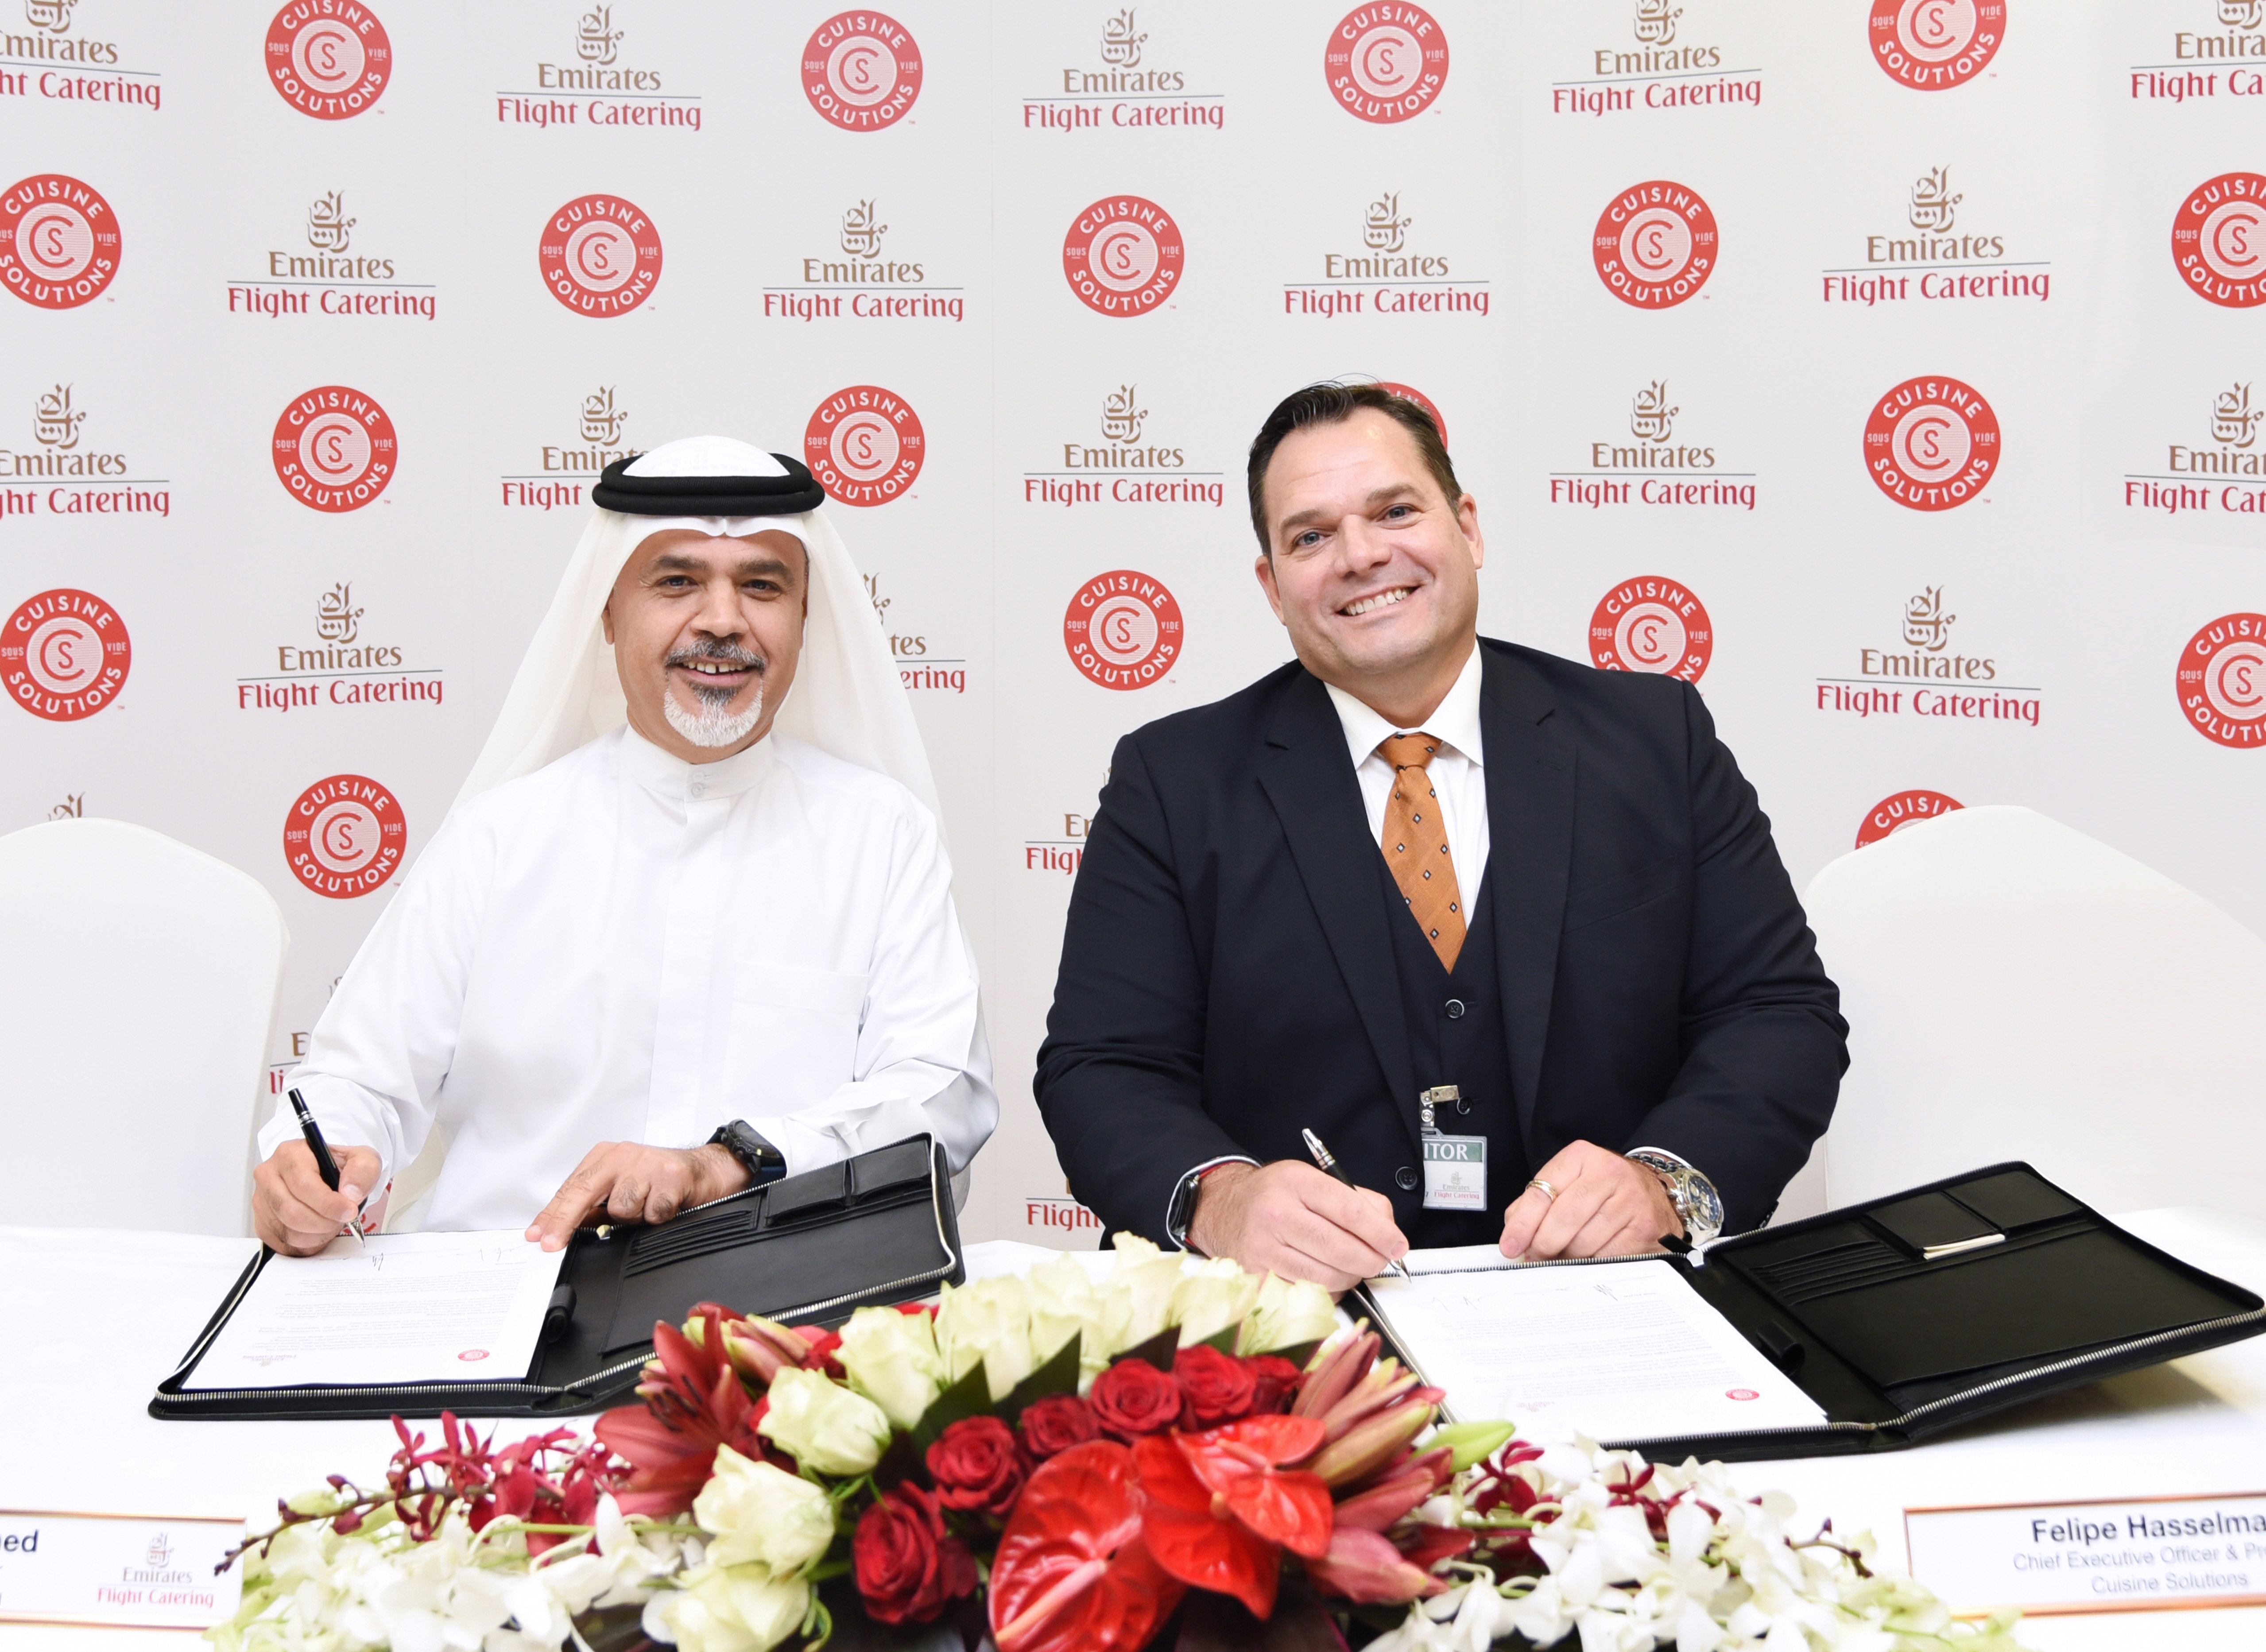 From left to right: Saeed Mohammed, Chief Executive Officer, Emirates Flight Catering and Felipe Hasselmann, President and Chief Executive Officer, Cuisine Solutions Inc.